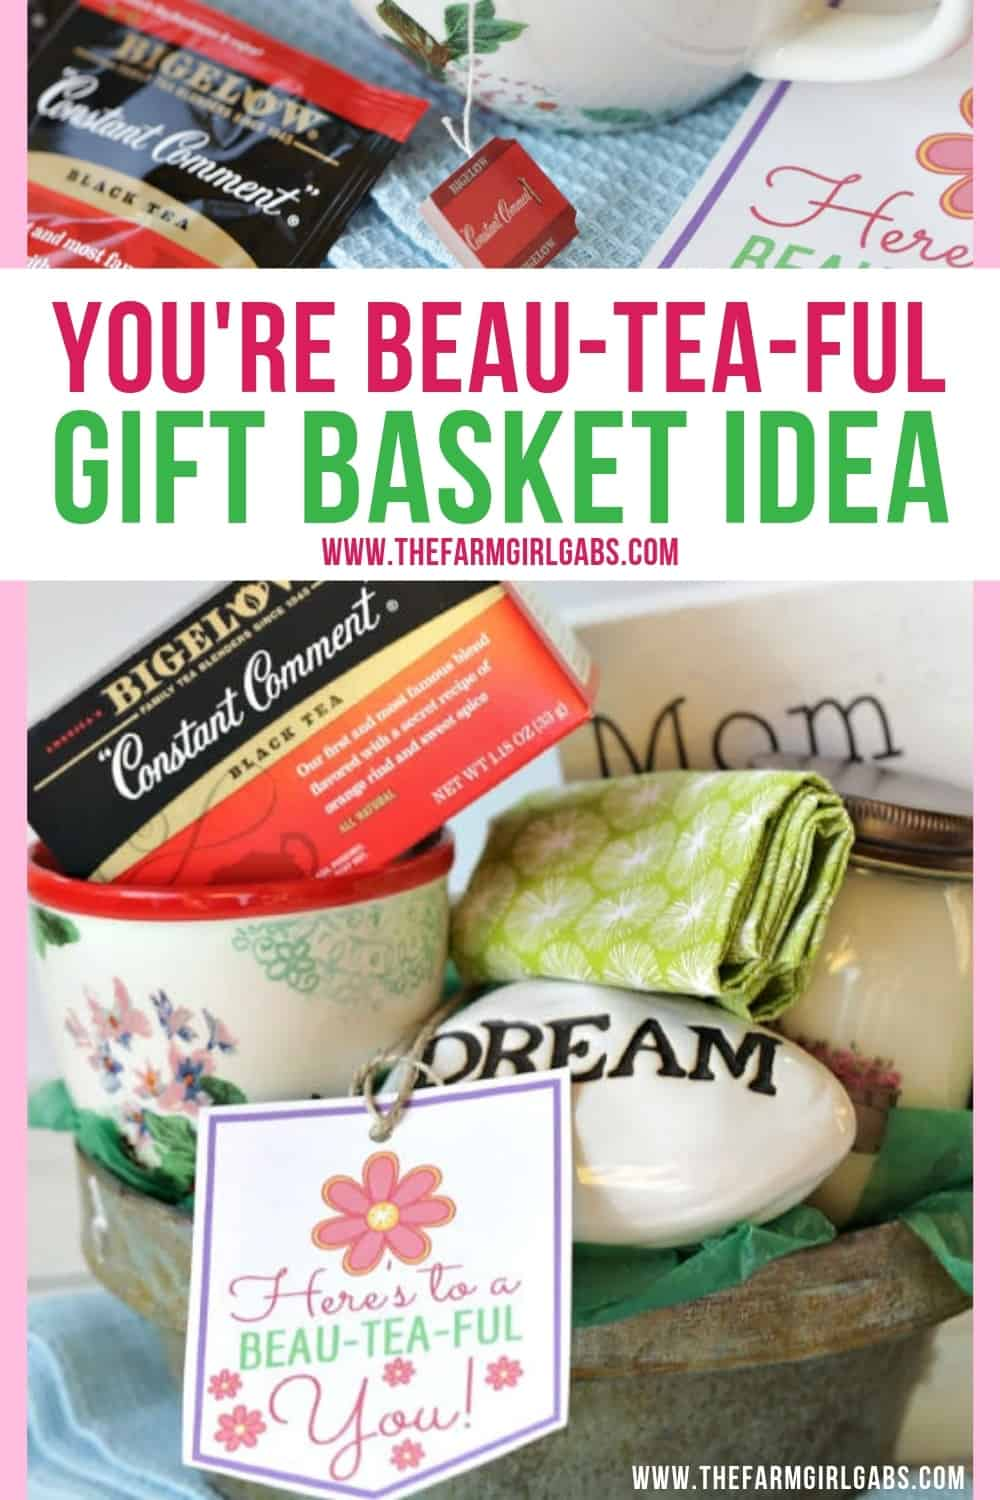 """Surprise mom, or grandma, or Aunt Jane with this """"You're Beau-TEA-ful"""" DIY Mother's Day Gift Idea. Download the free printable gift tag to attach to your gift. #TeaProudly, #Ad, #MyConstantComment #GiftIdea #GiftBasket #Printables #MothersDayGift"""